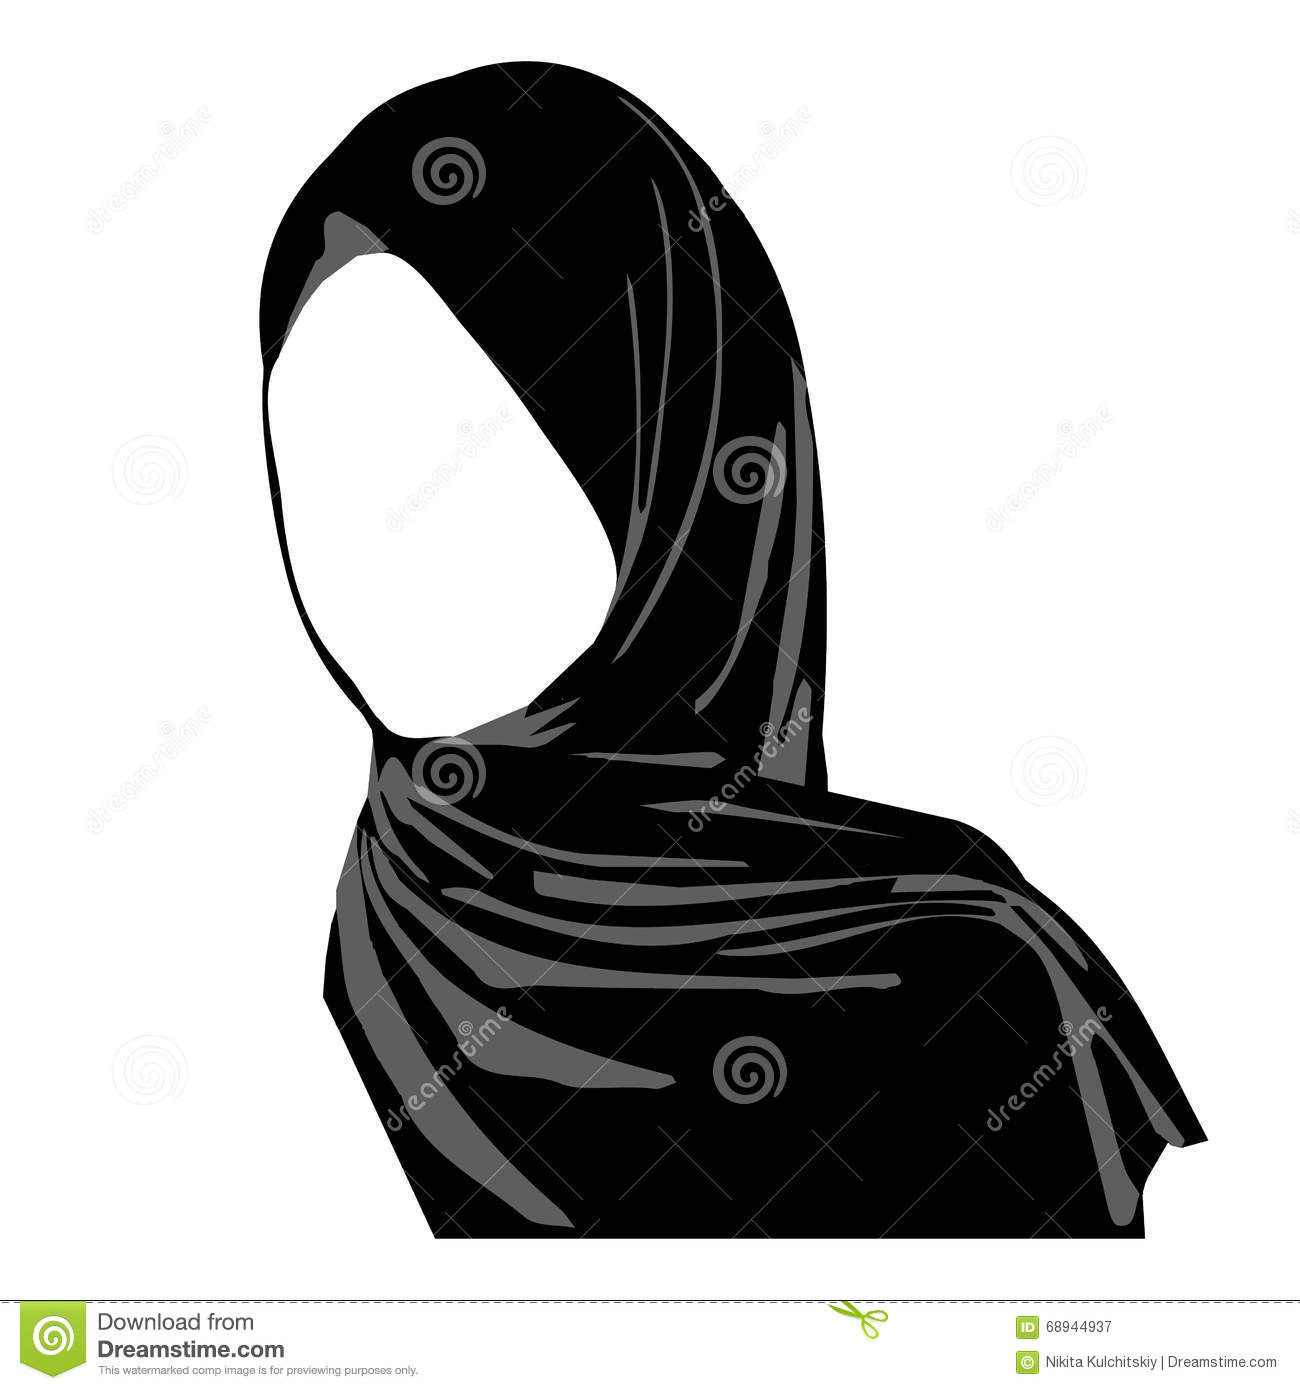 woman hijab silhouette stock vector illustration of